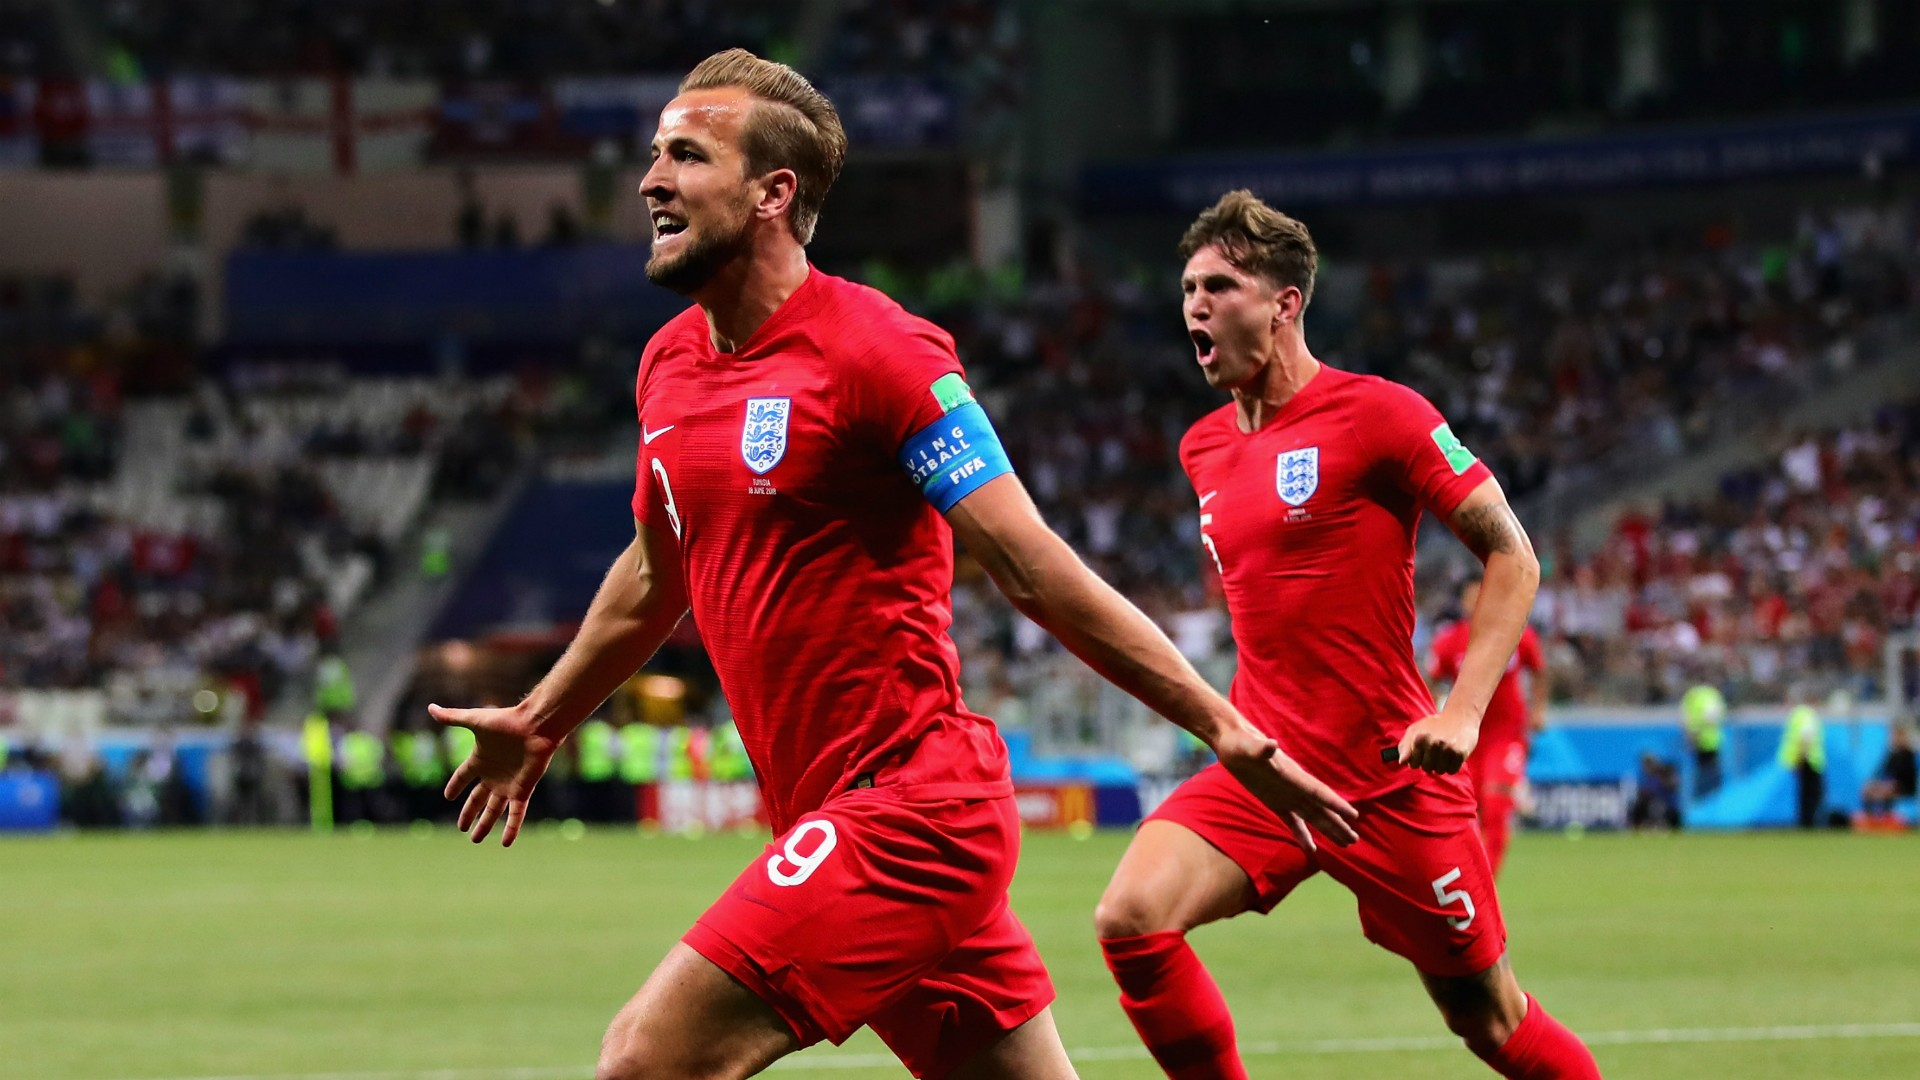 harry kane 1urgv7z0eti431c6ezxfo9t9qu - VIDEO: Tunisia 1-2 England (2018 World Cup) Highlights